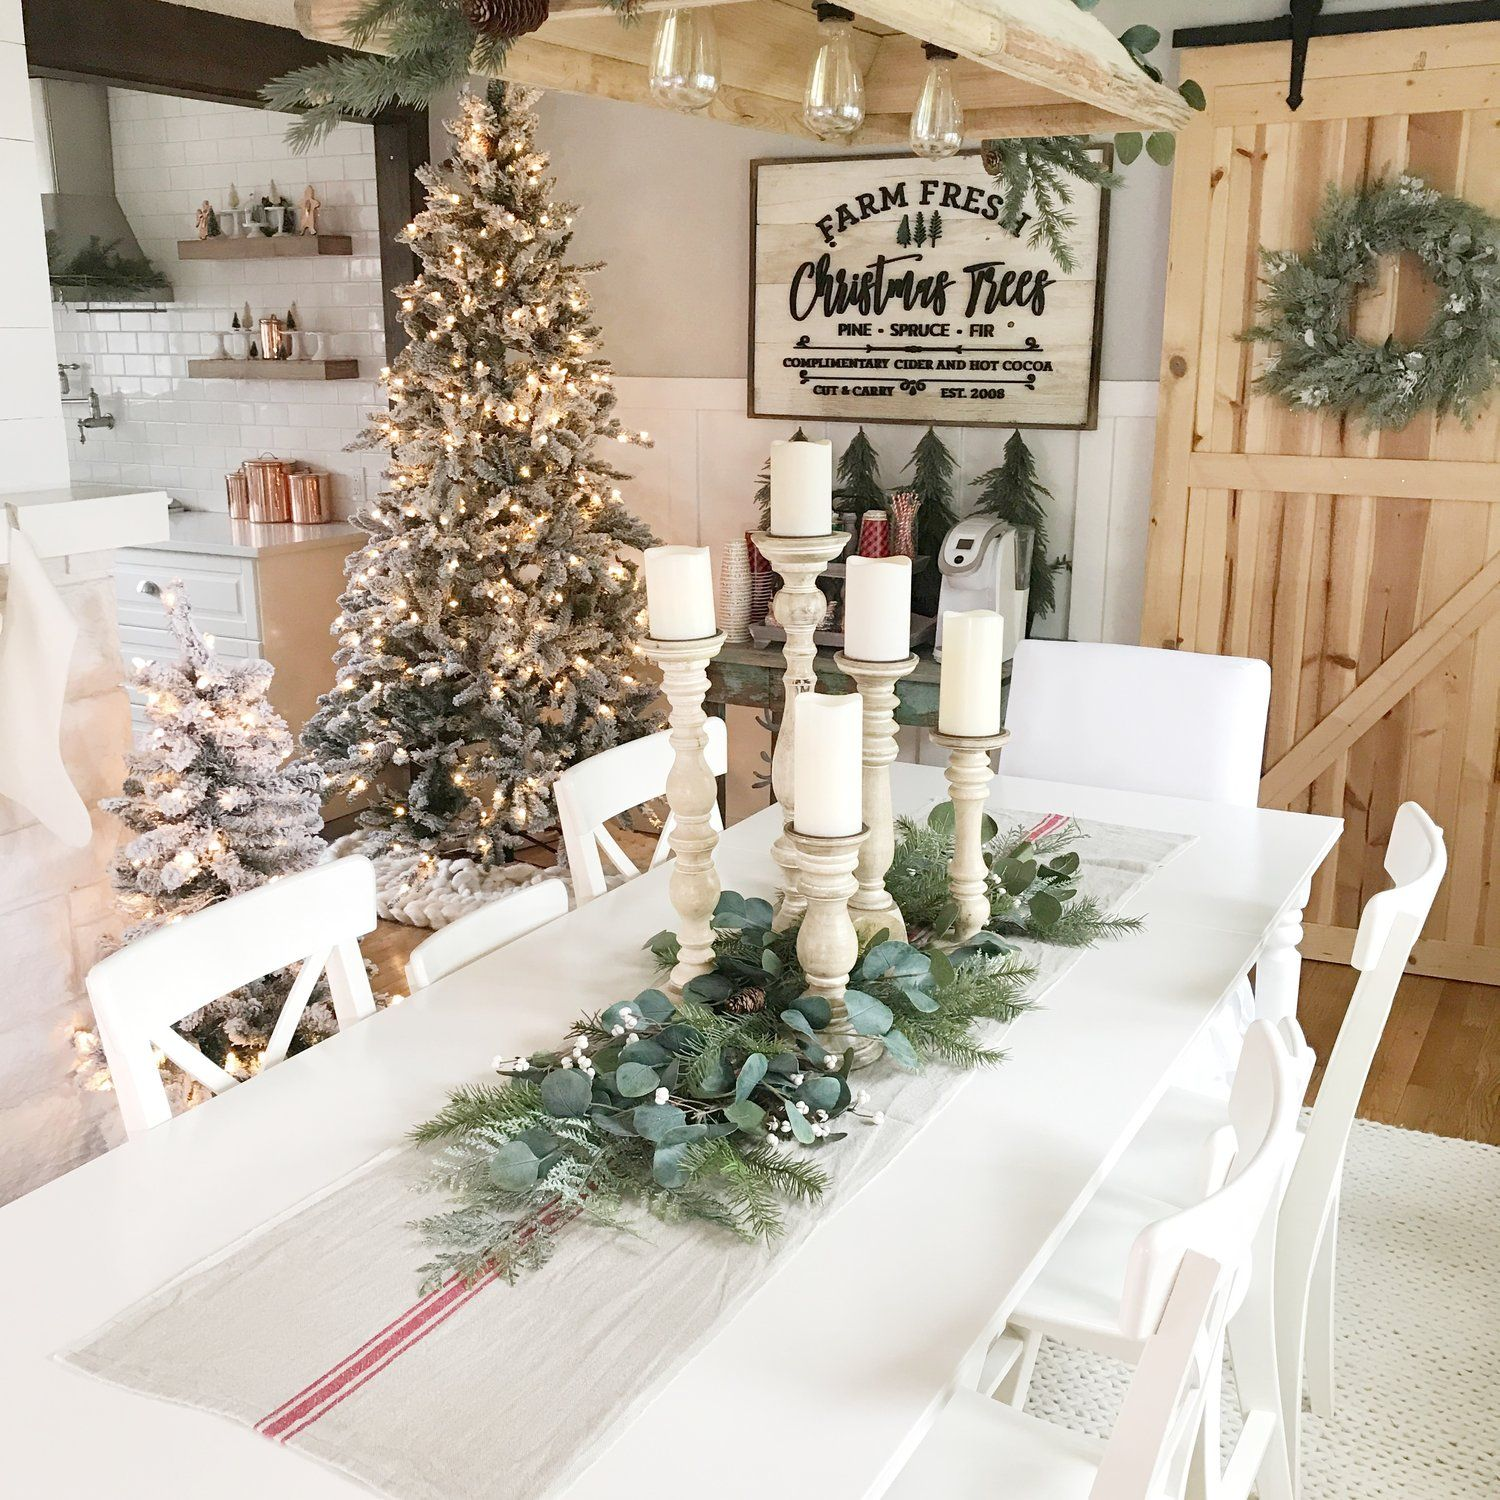 Chandelier antique farmhouse christmas tree sign harper grayce chandelier antique farmhouse christmas tree sign harper grayce wreath walnut harbor aloadofball